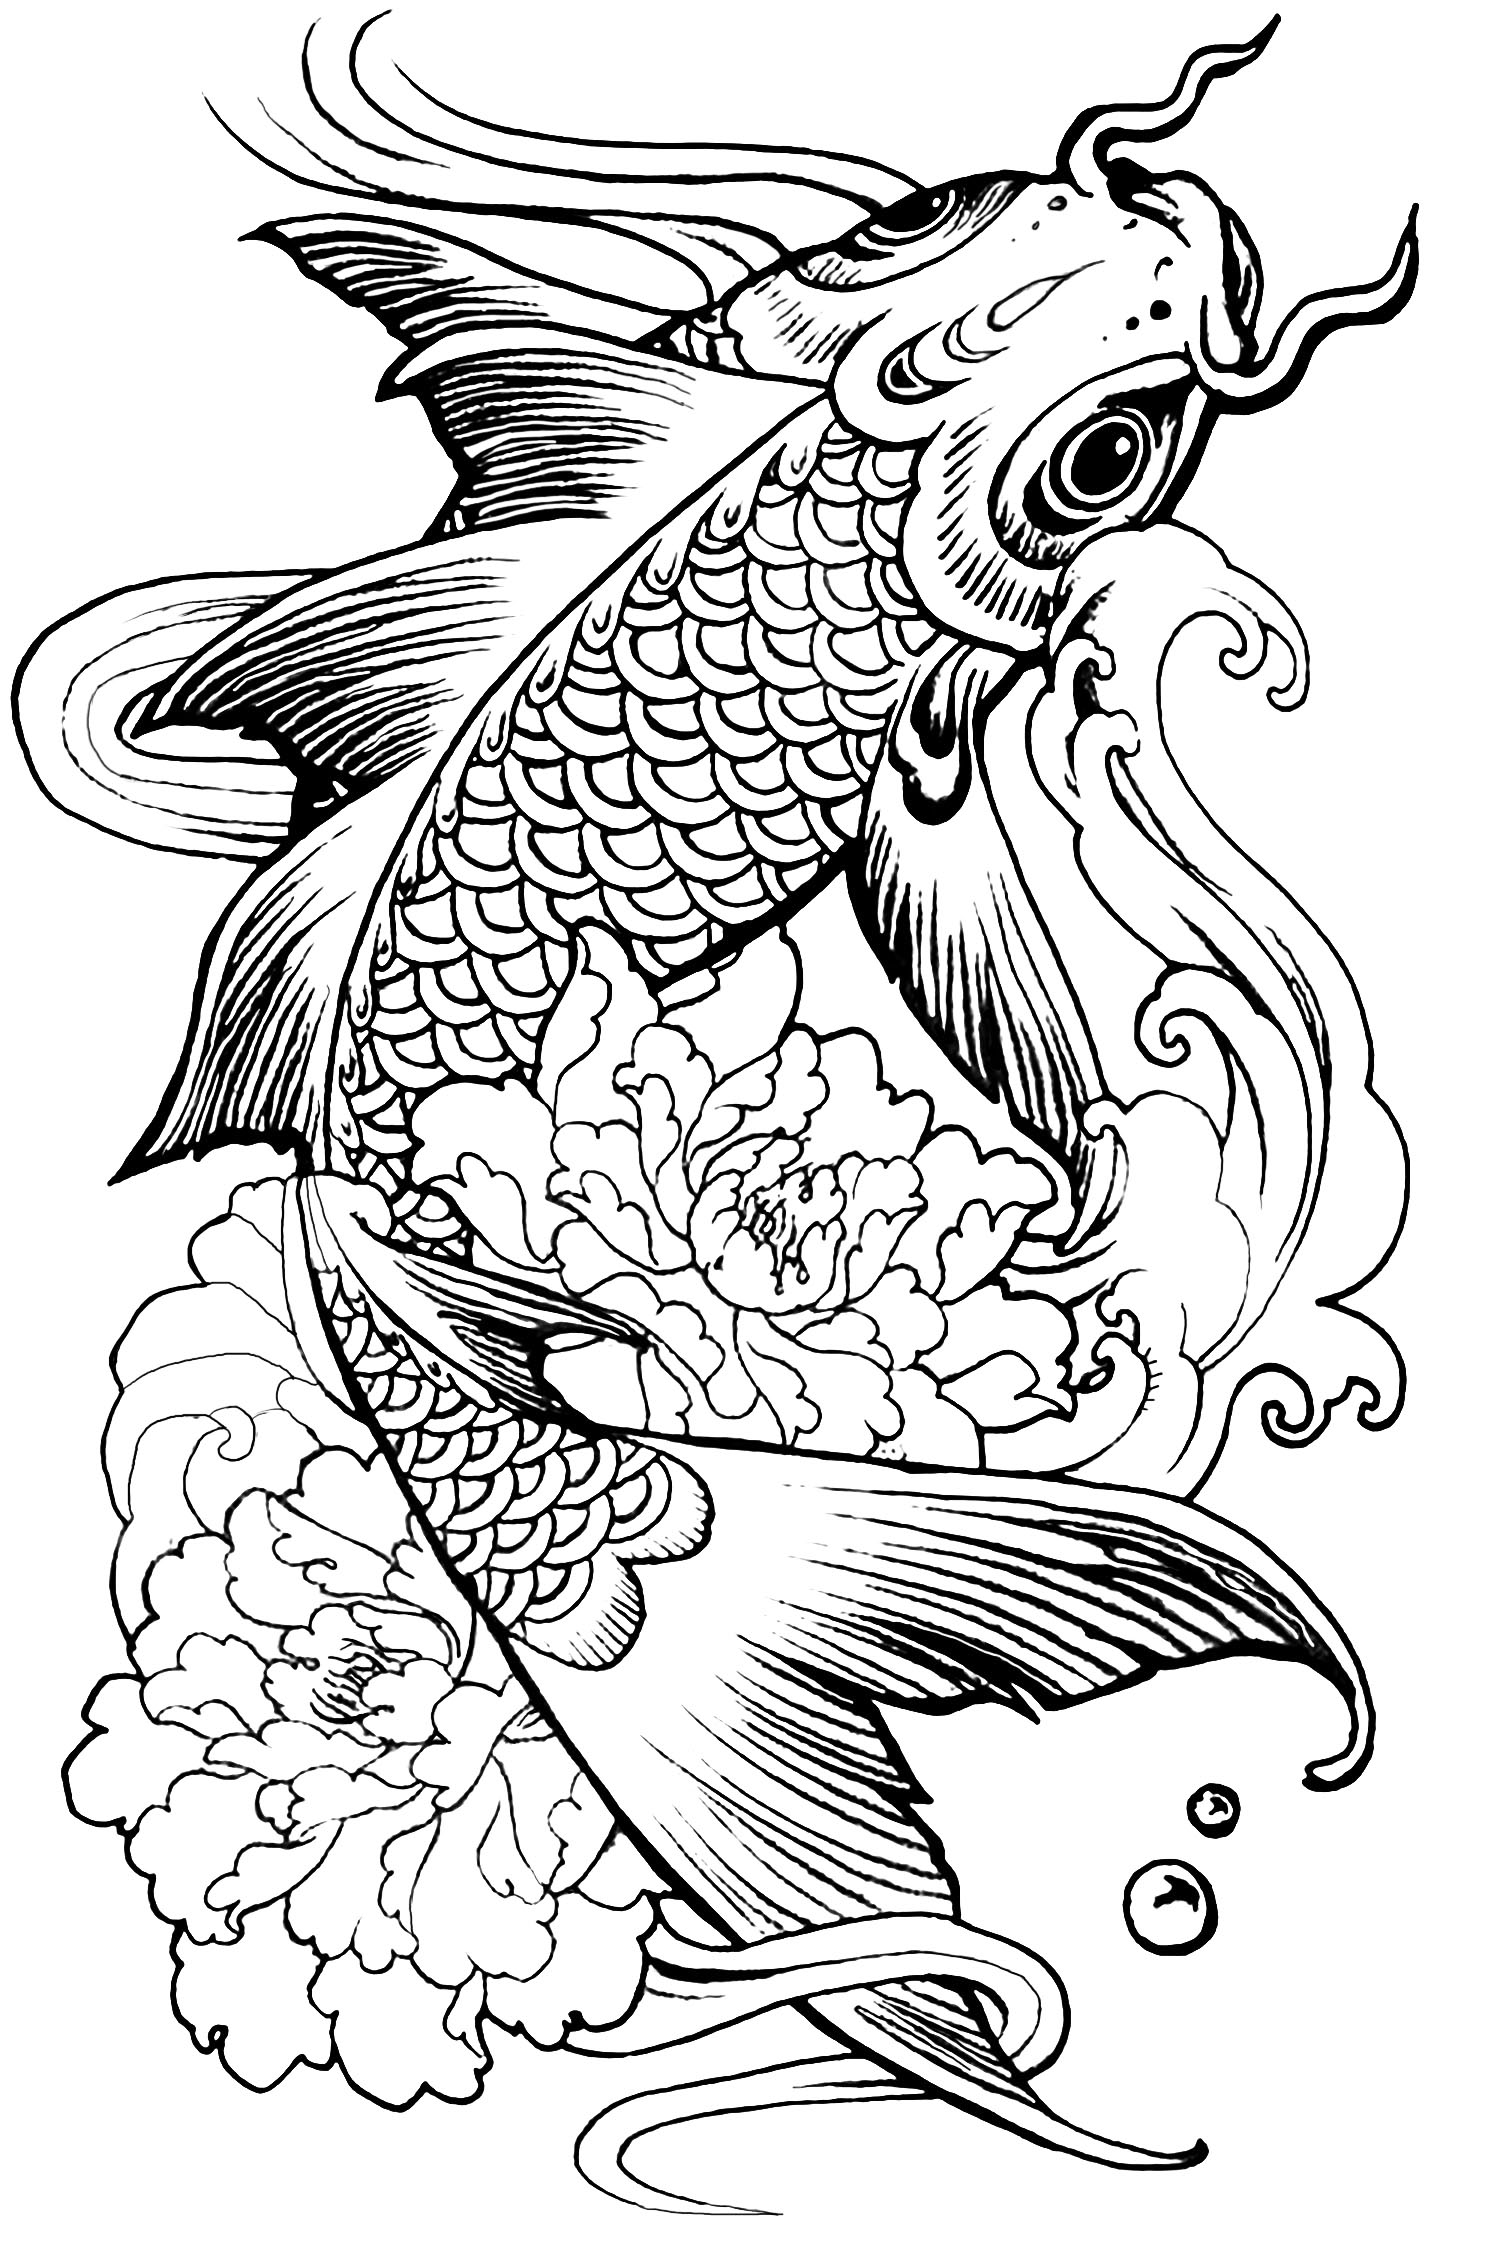 Simple Pisces coloring page to print and color for free